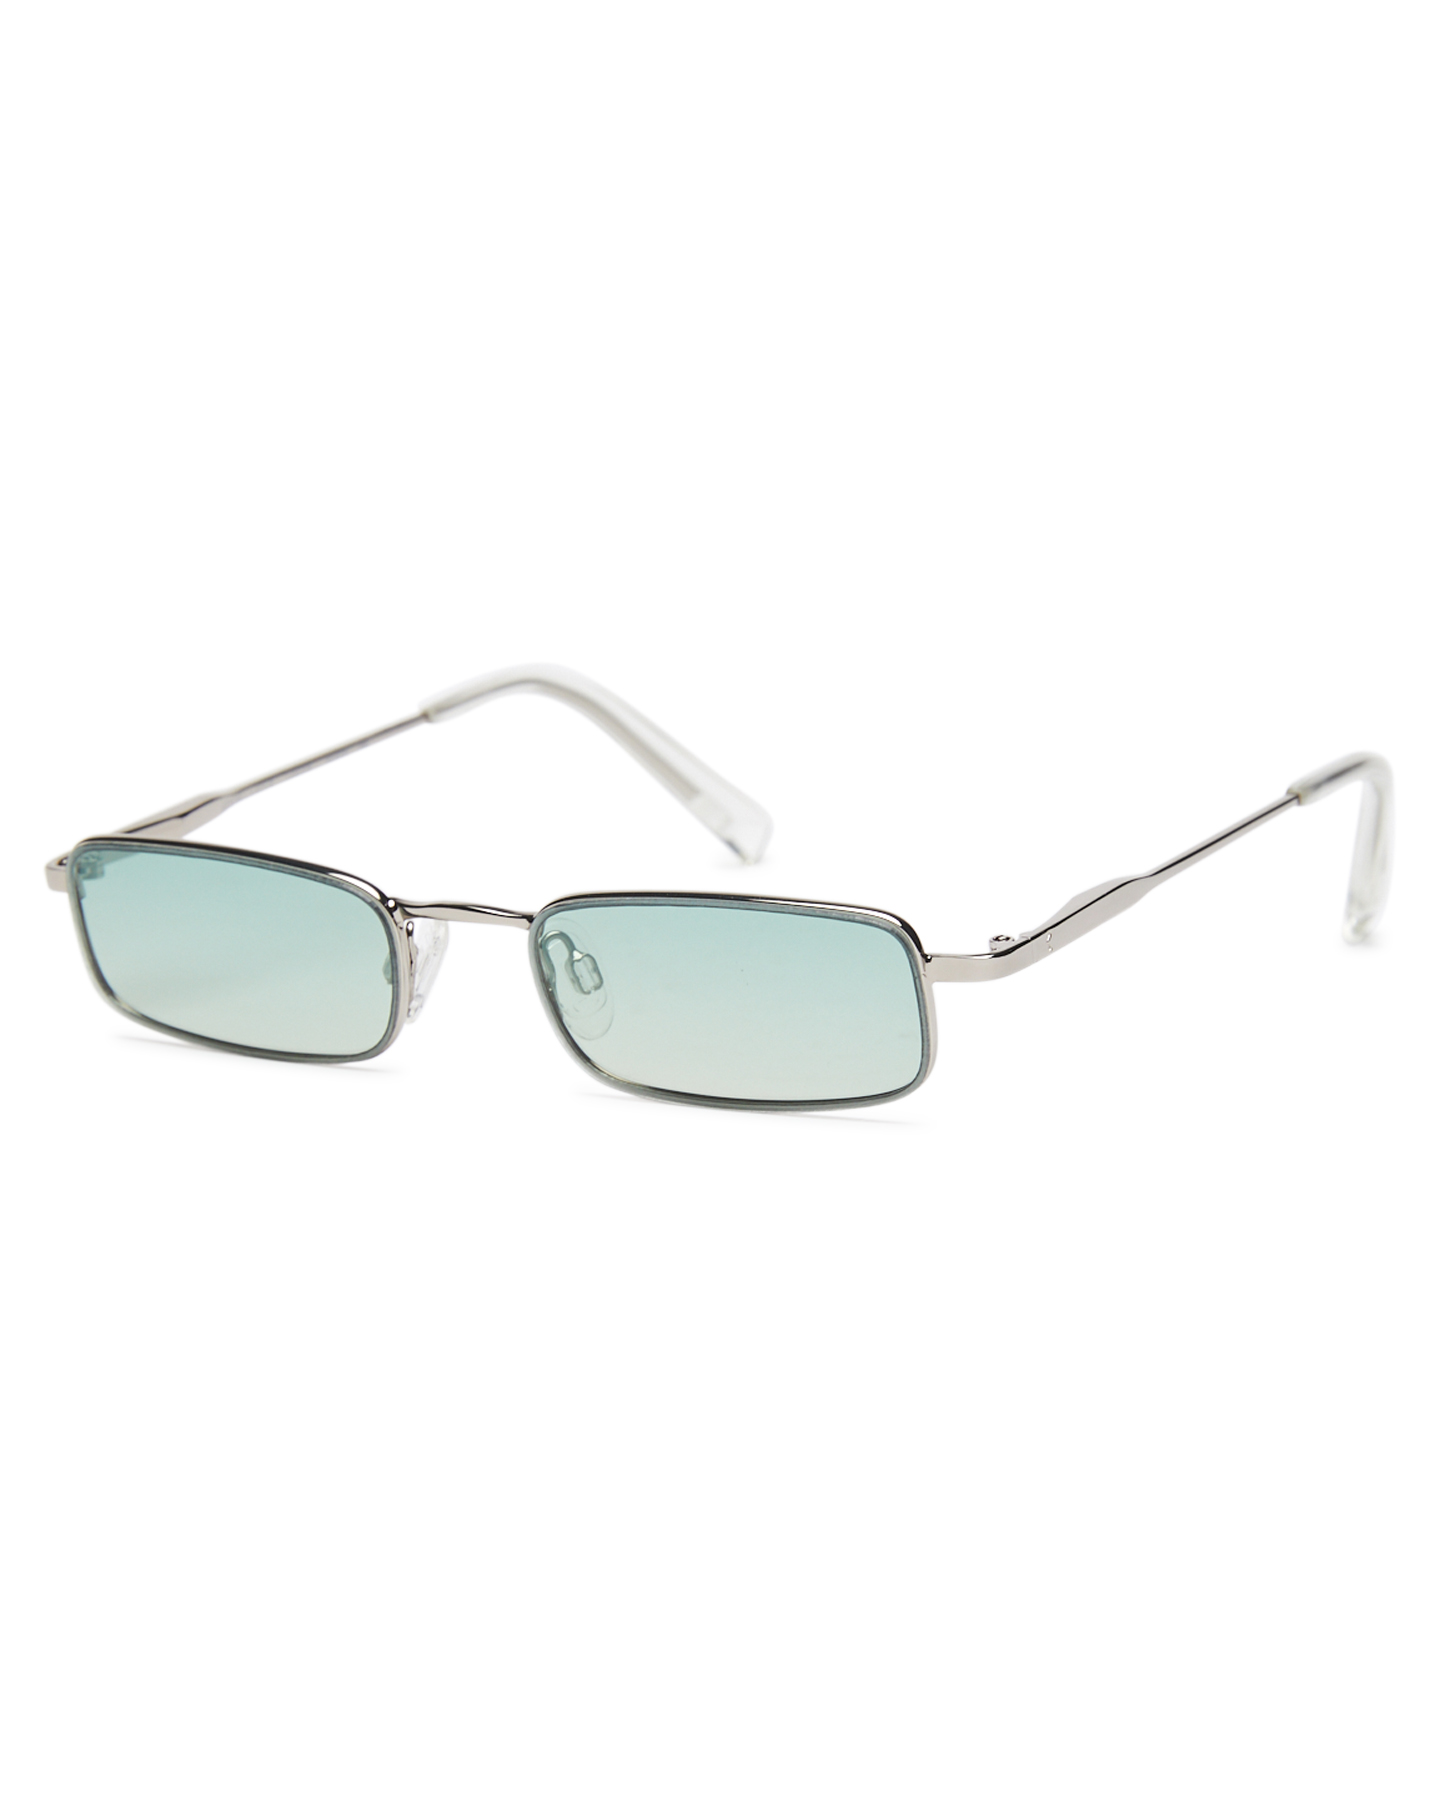 Kendall And Kylie Lancer Sunglasses Shiny Light Gunmetal Shiny Light Gunmetal